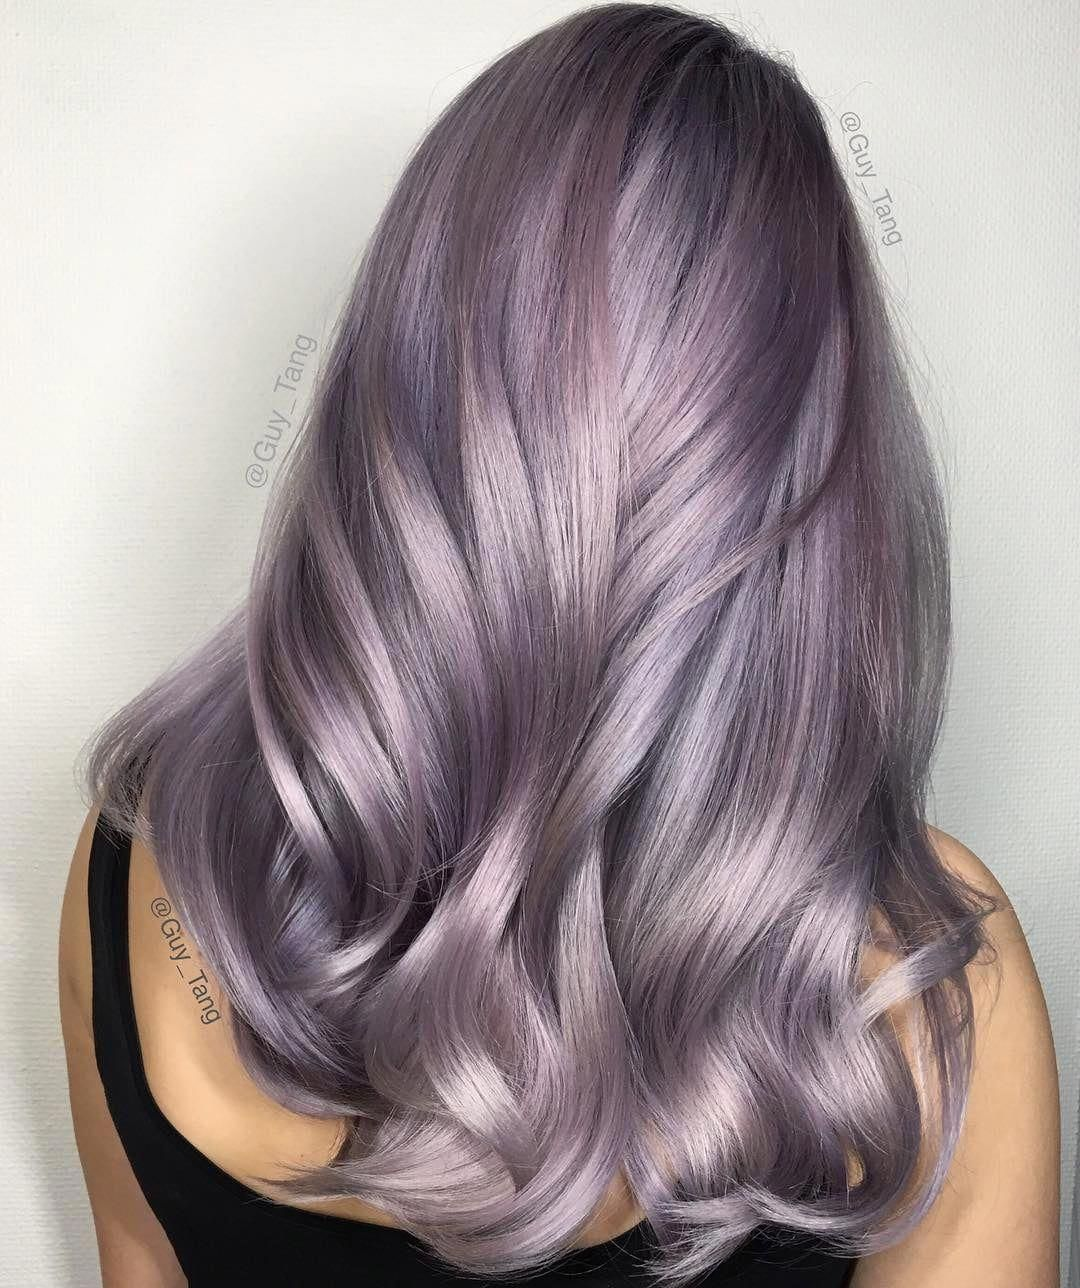 Smoky Lilac Is the Glam-Grunge Hair Color You Shou